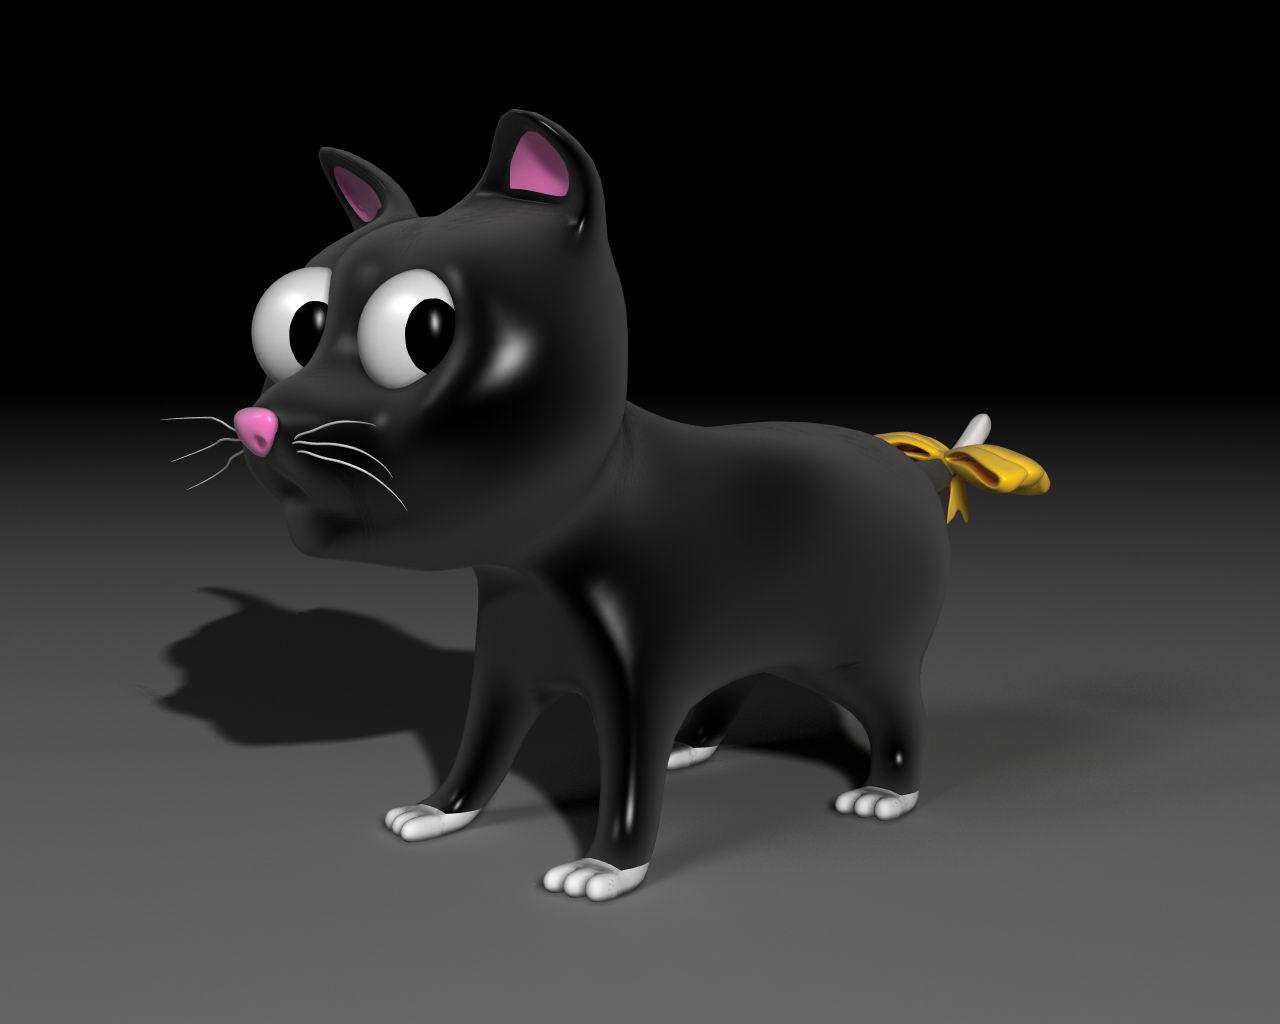 toon kitty moon 3d modelis 3ds max 211663